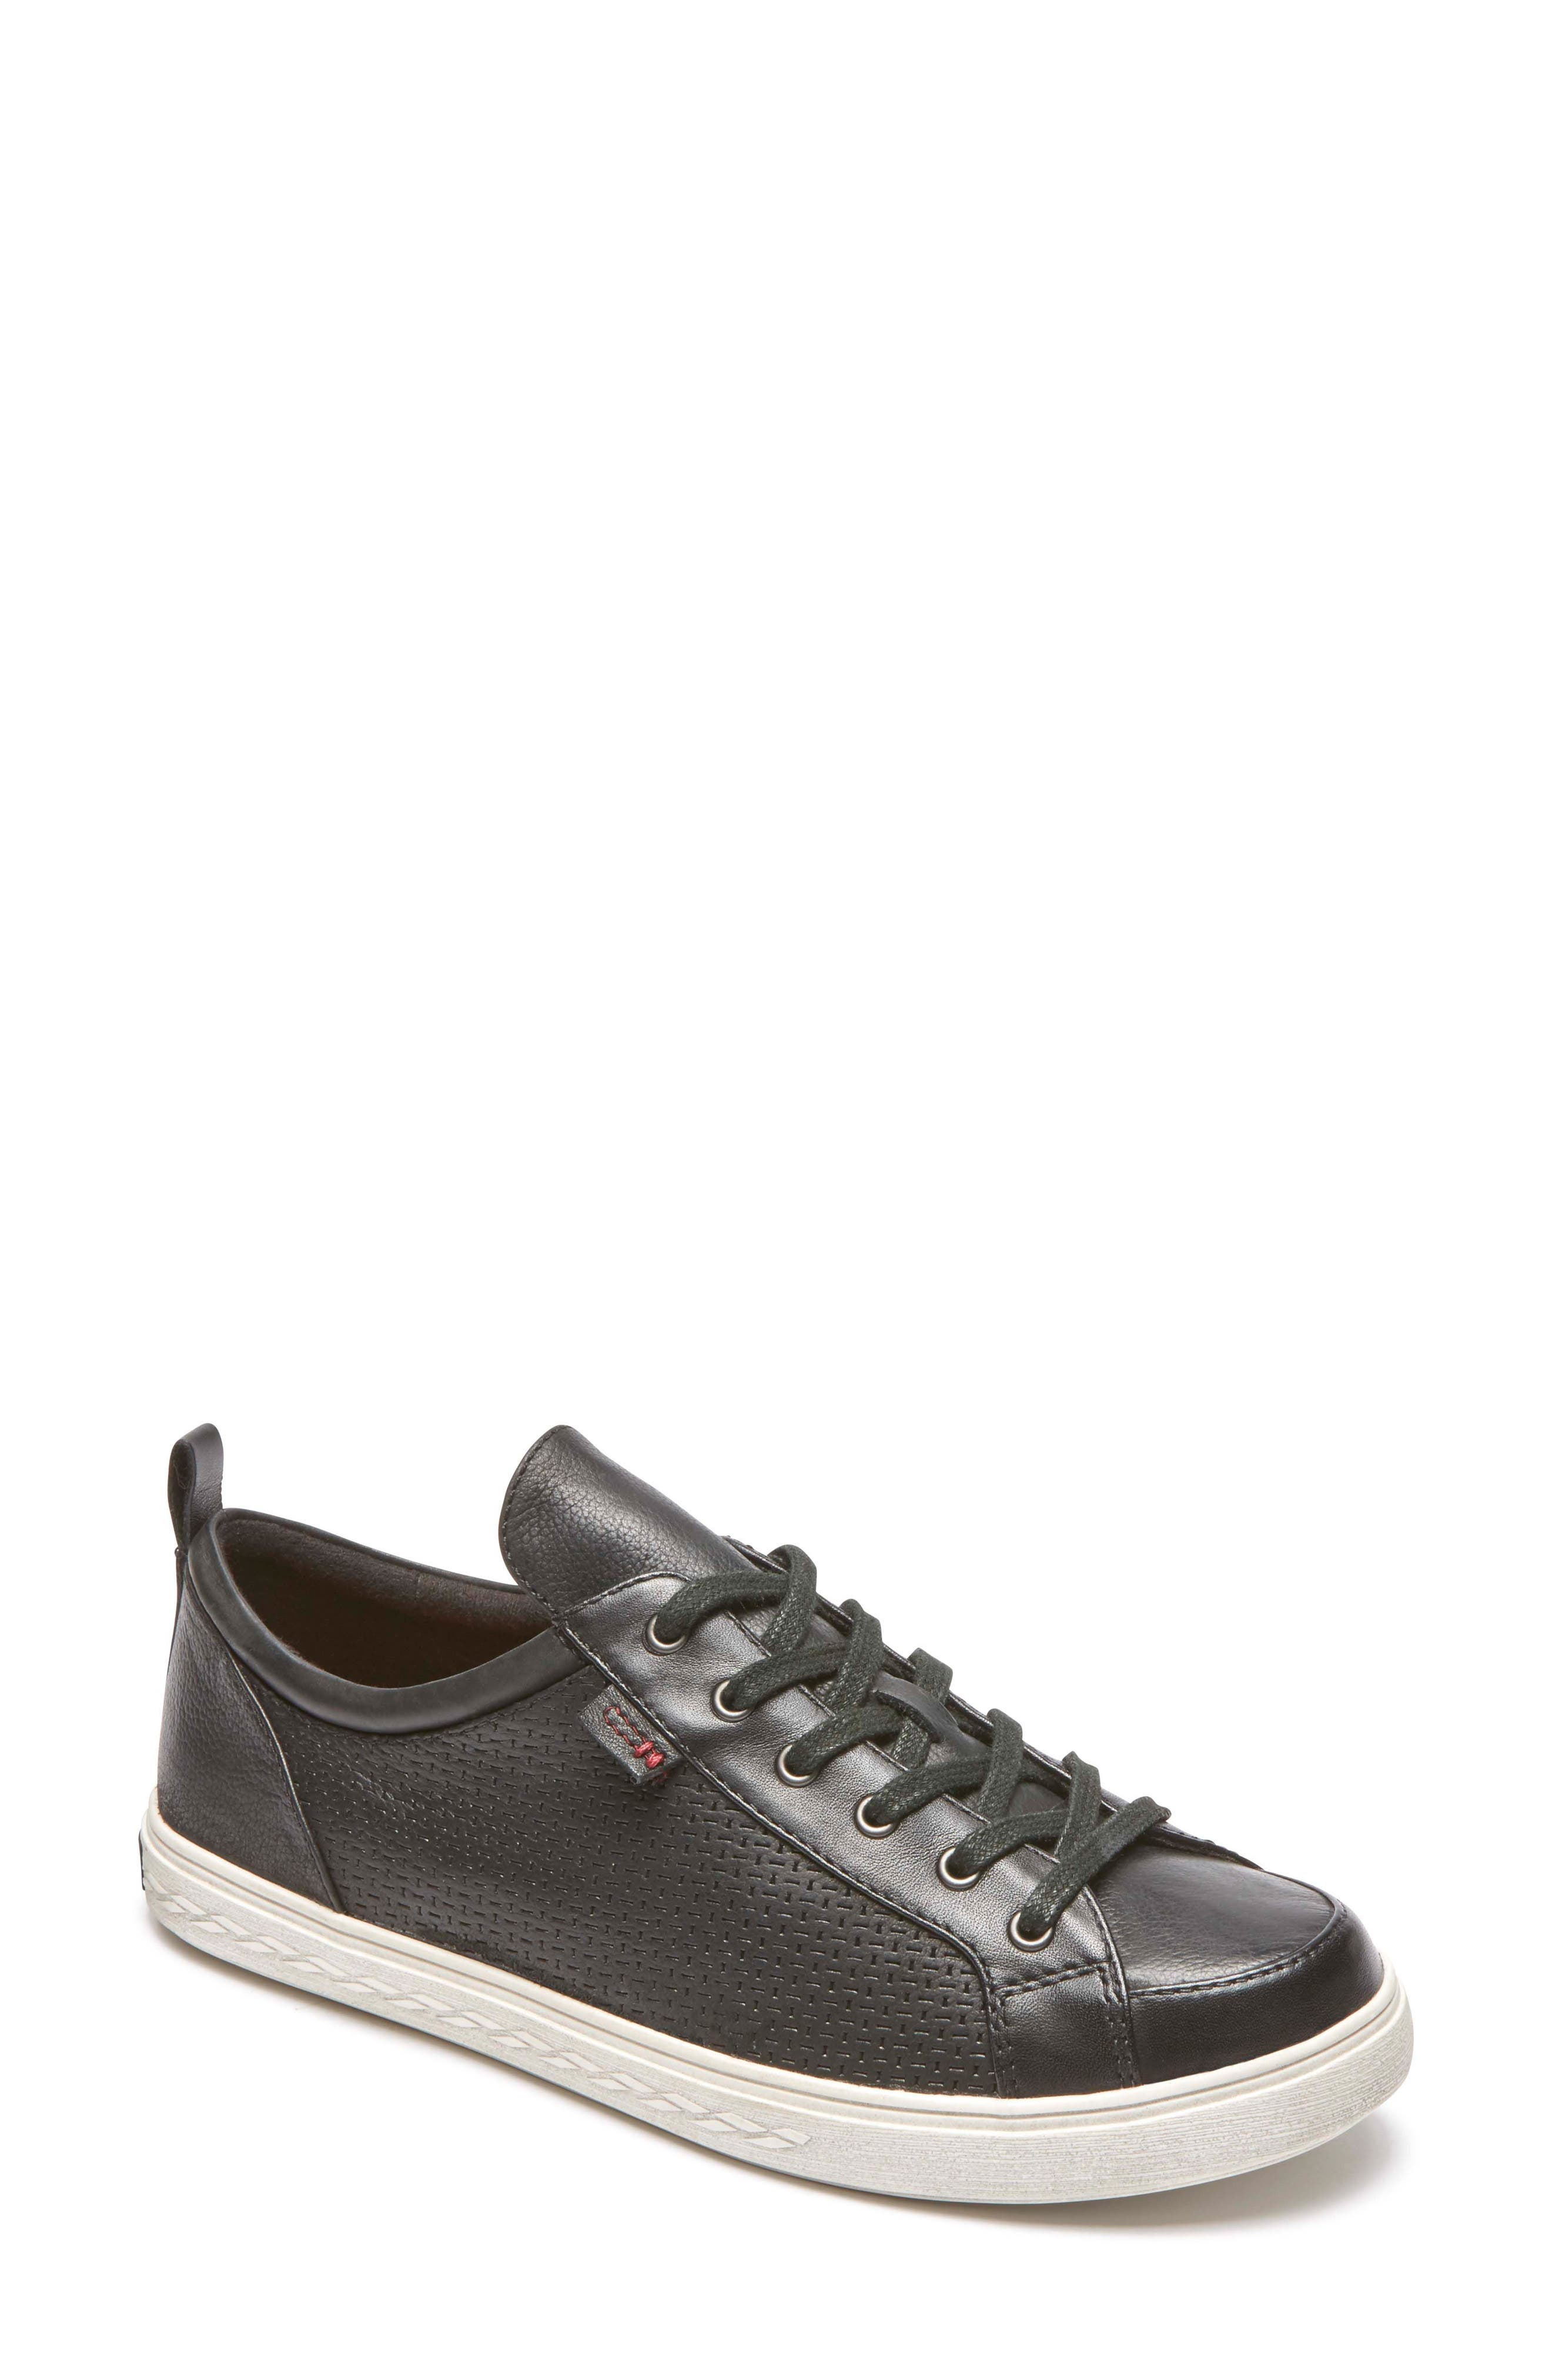 Rockport Cobb Hill Willa Sneaker (Women)